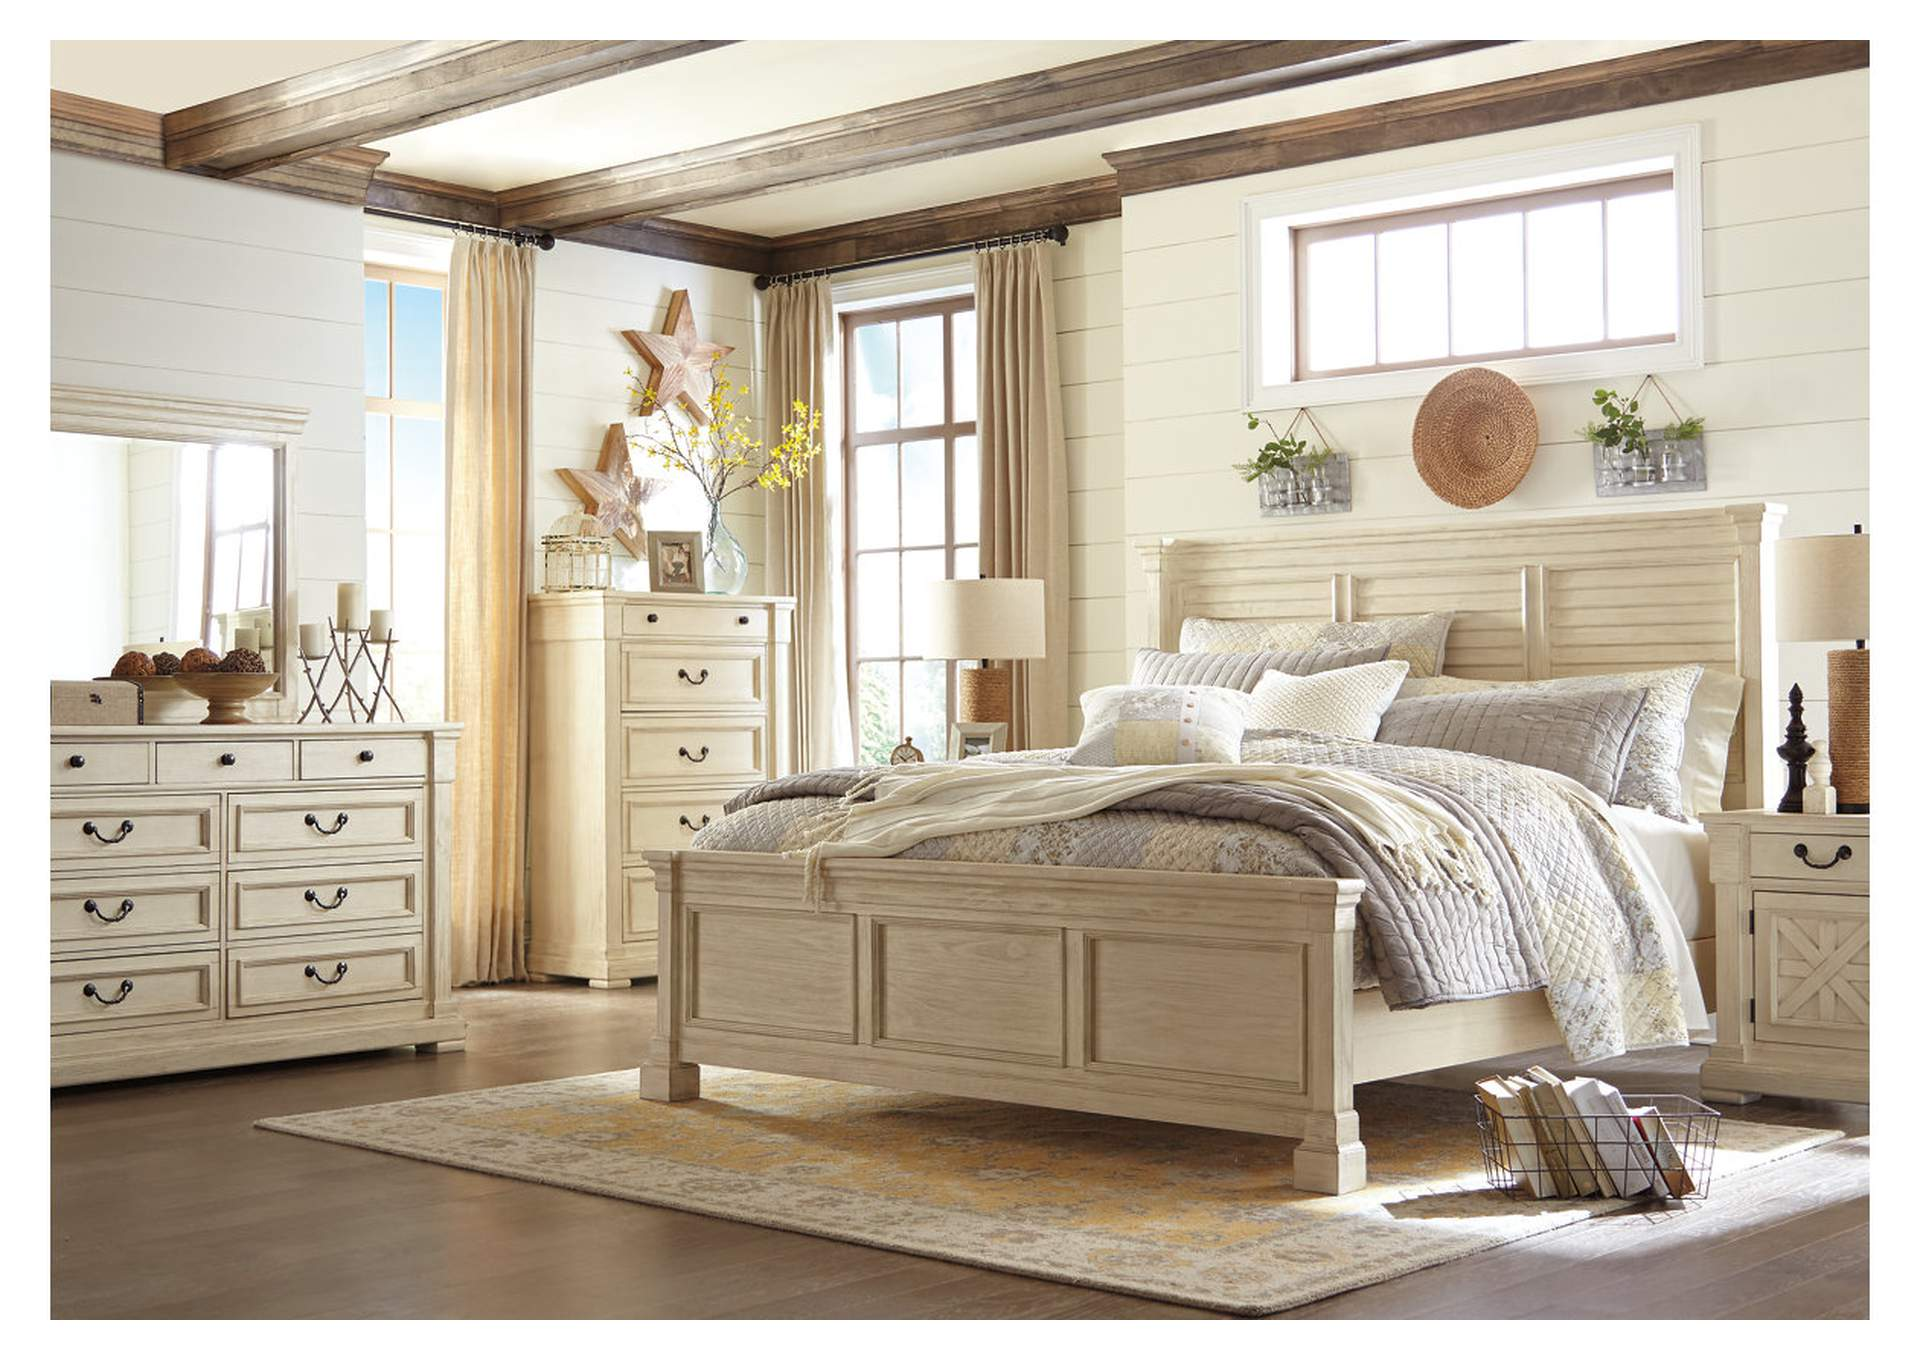 Bolanburg White California King Louvered Bed w/Dresser & Mirror,Signature Design By Ashley